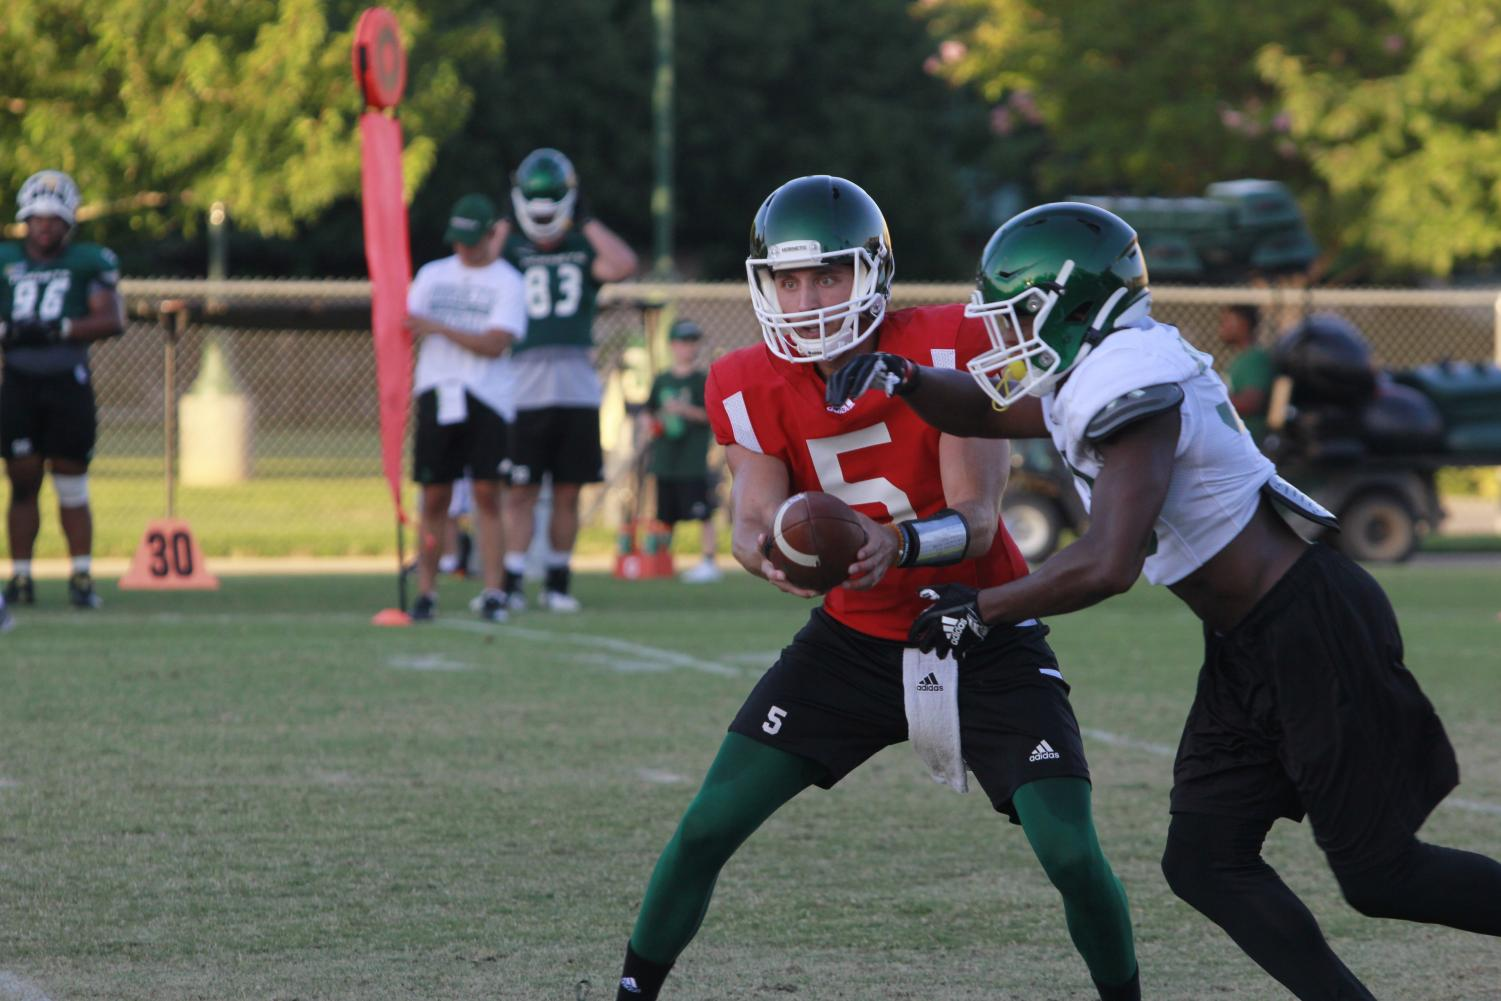 Sac+State+junior+quarterback+Kevin+Thomson+fakes+a+hand-off+to+junior+running+back+Elijah+Dotson+during+training+camp+on+Tuesday%2C+August+12+at+the+practice+field.+Thomson+is+entering+his+third+season+as+starter+for+Sac+State.